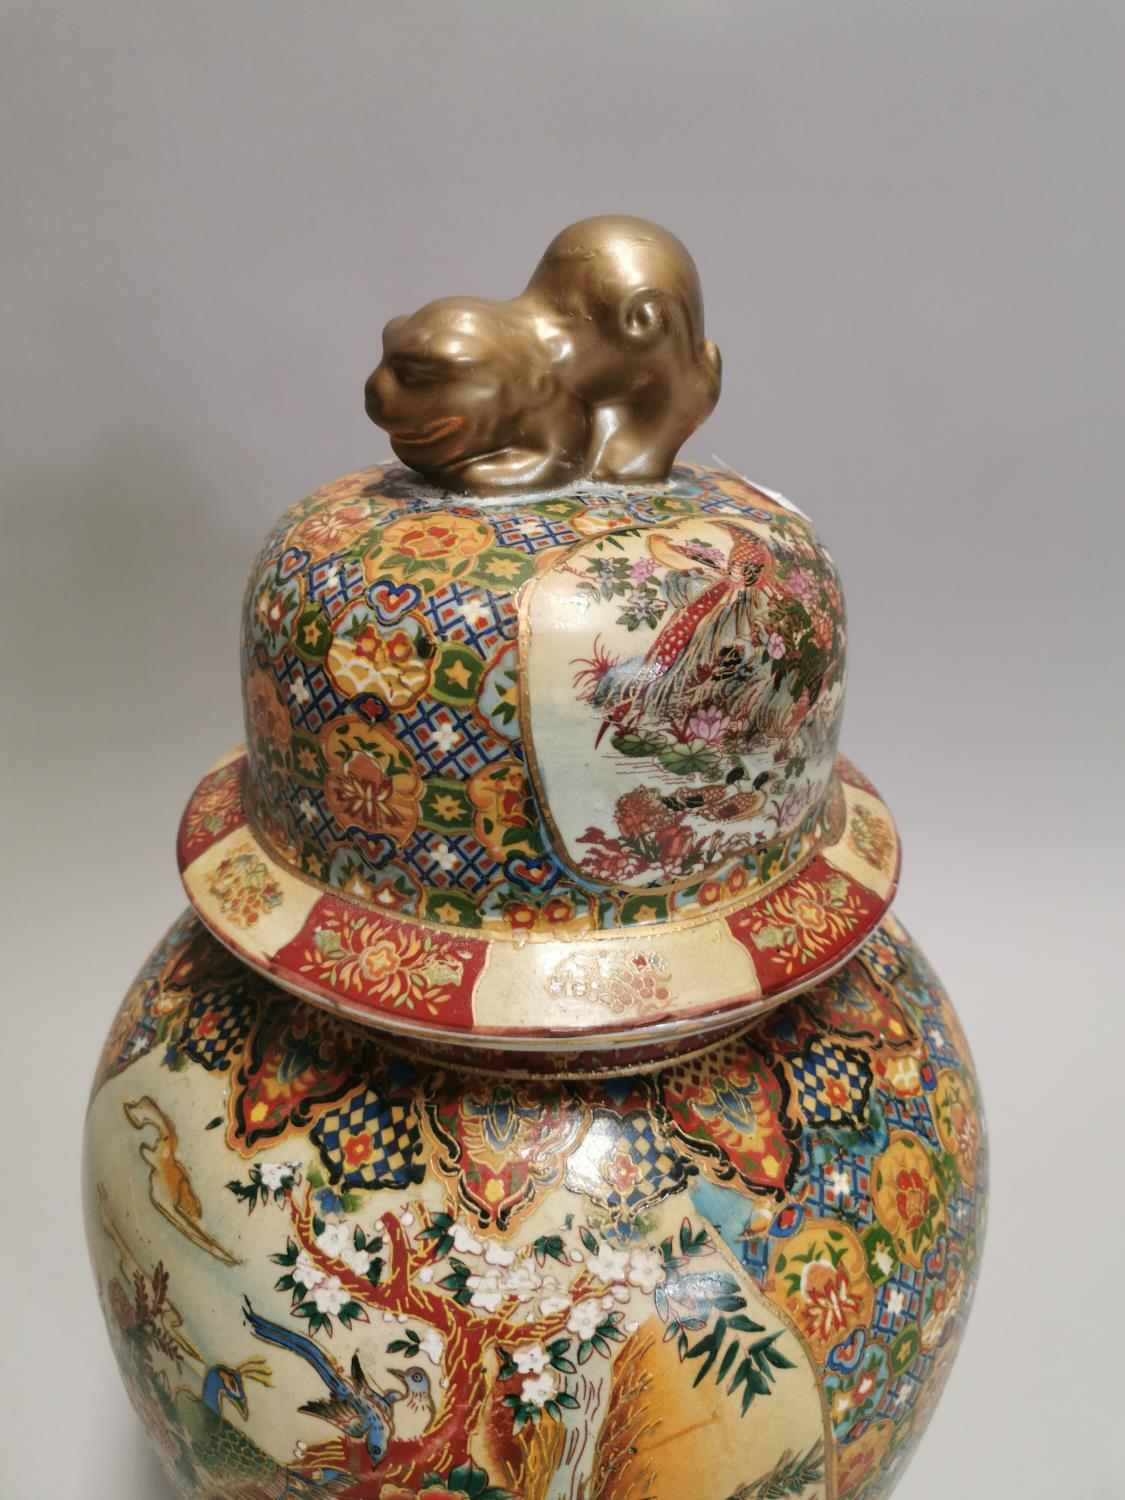 Ceramic lidded vase in the Cantonese style. - Image 4 of 7